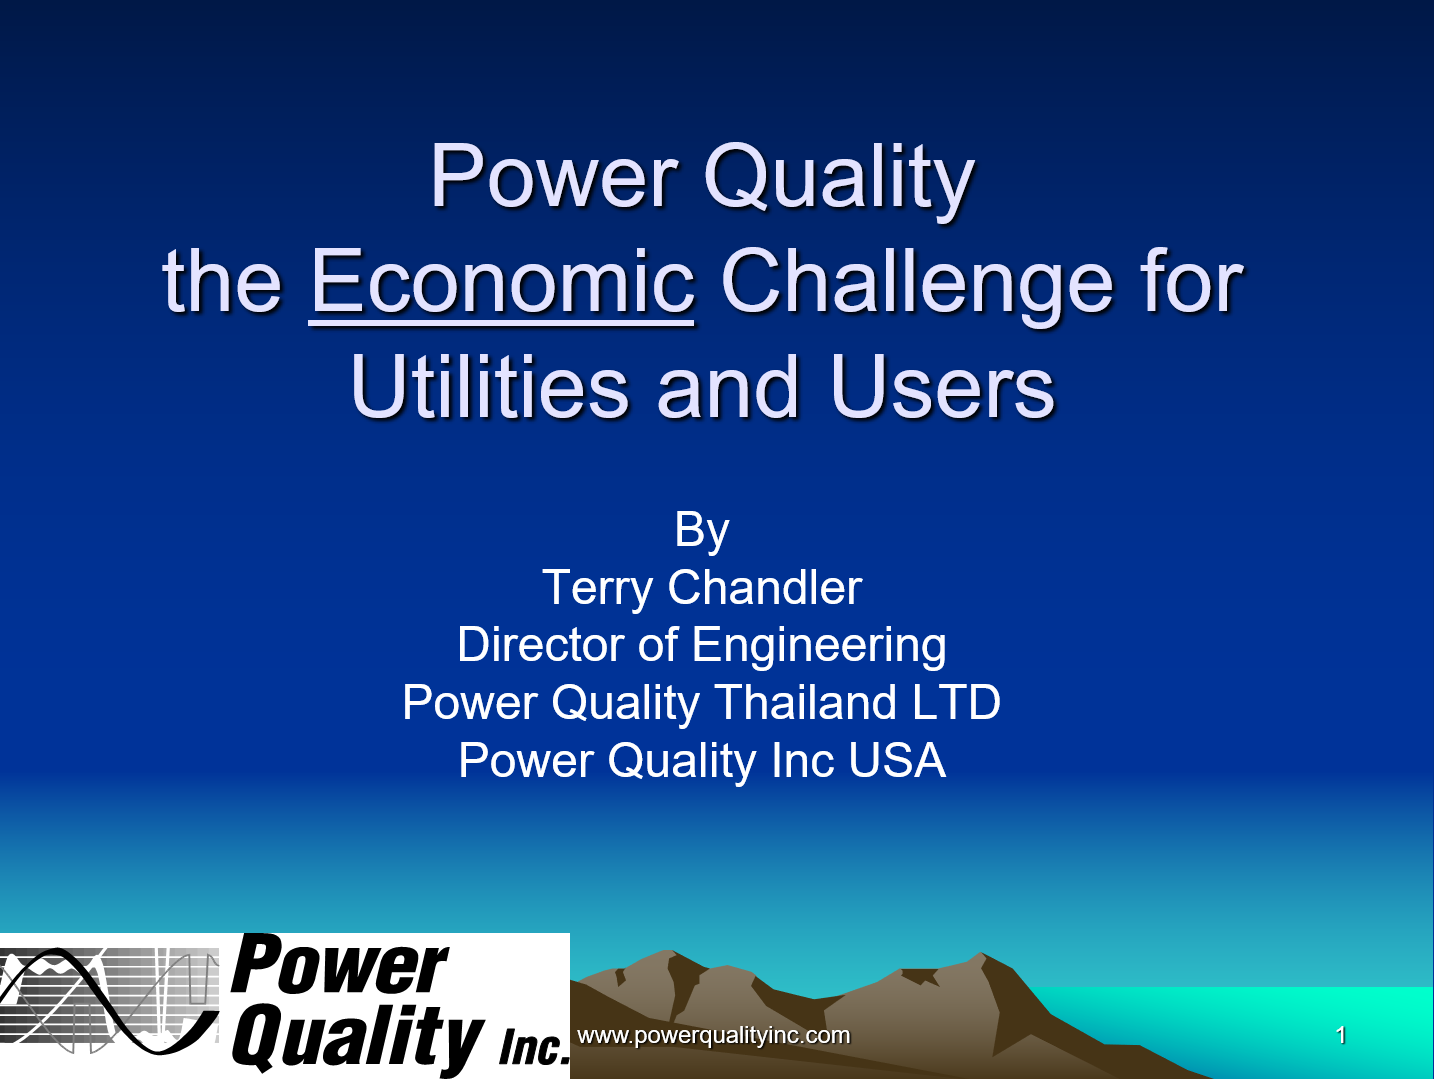 Power Quality the Economic Challenge for Utilities and Users_1